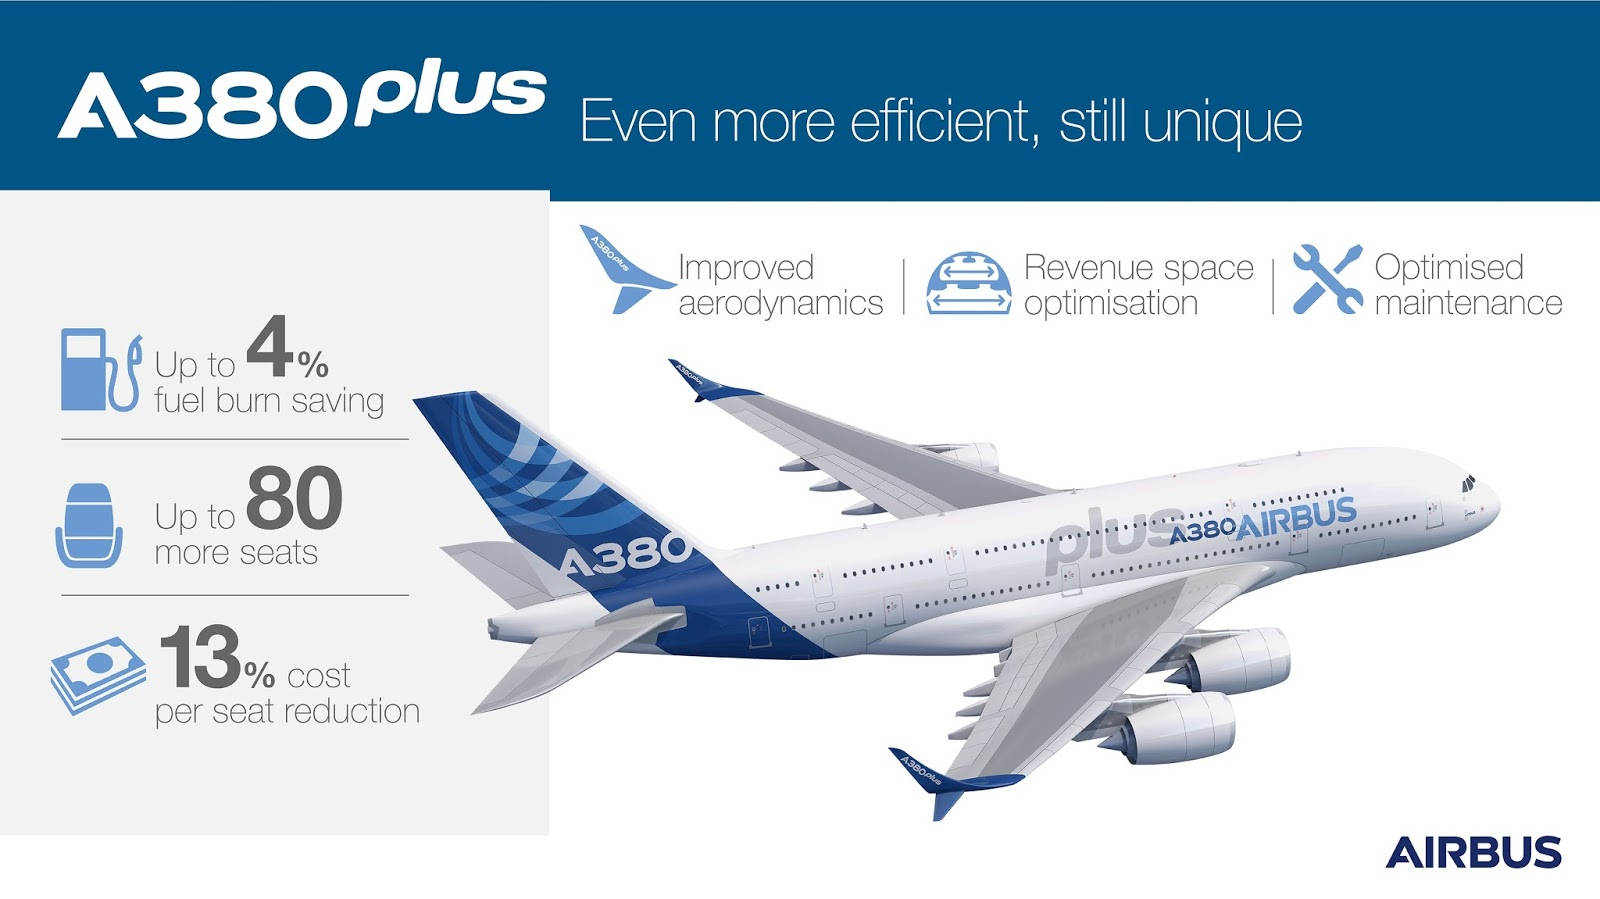 Pic my etihad pearl business class seat 9h on b777 300er may 2012 - Infographic Airbus Is Presenting A Development Study For An Enhanced A380 The A380plus